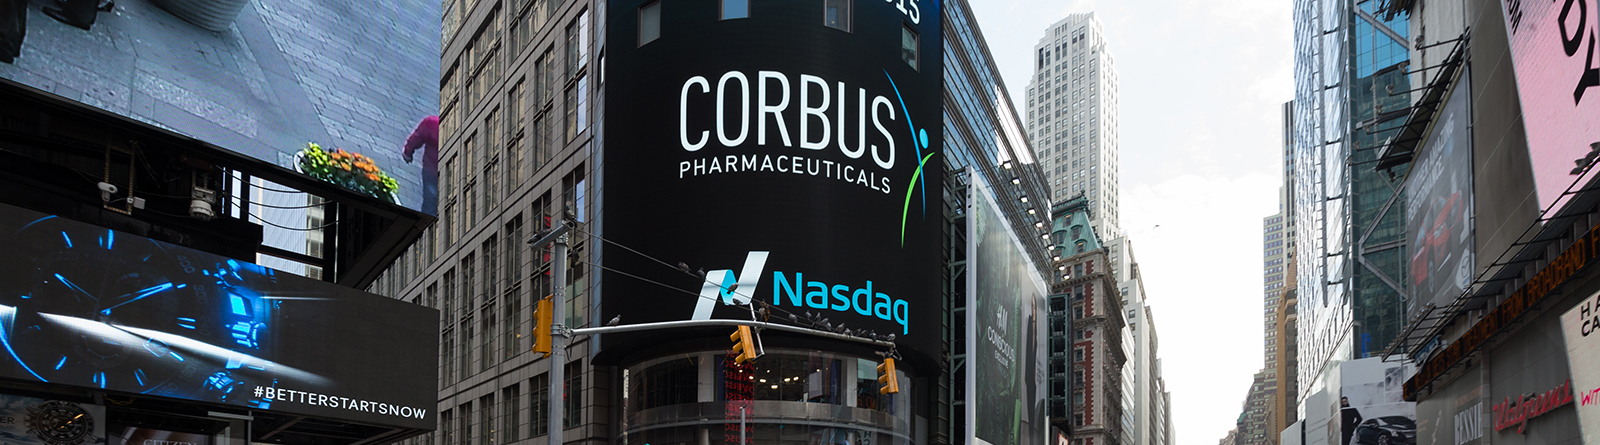 Corbus Pharmaceuticals Reports Fourth Quarter and Full Year 2018 Financial Results and Provides Clinical Updates Banner